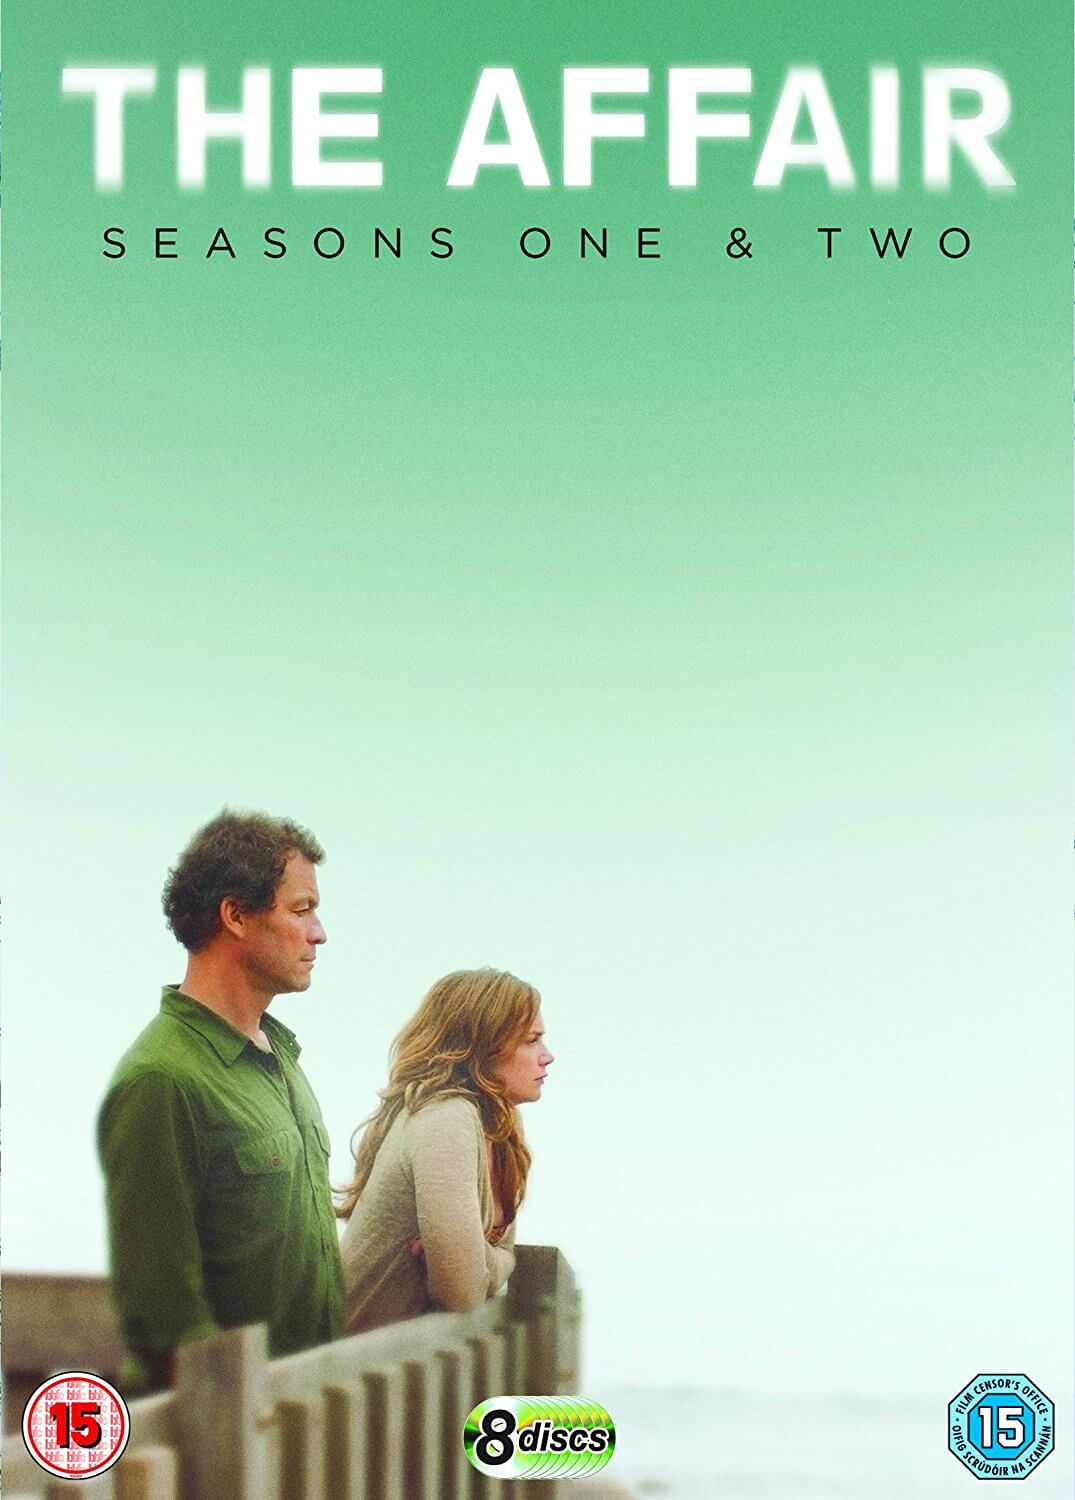 The Affair Seasons One & Two